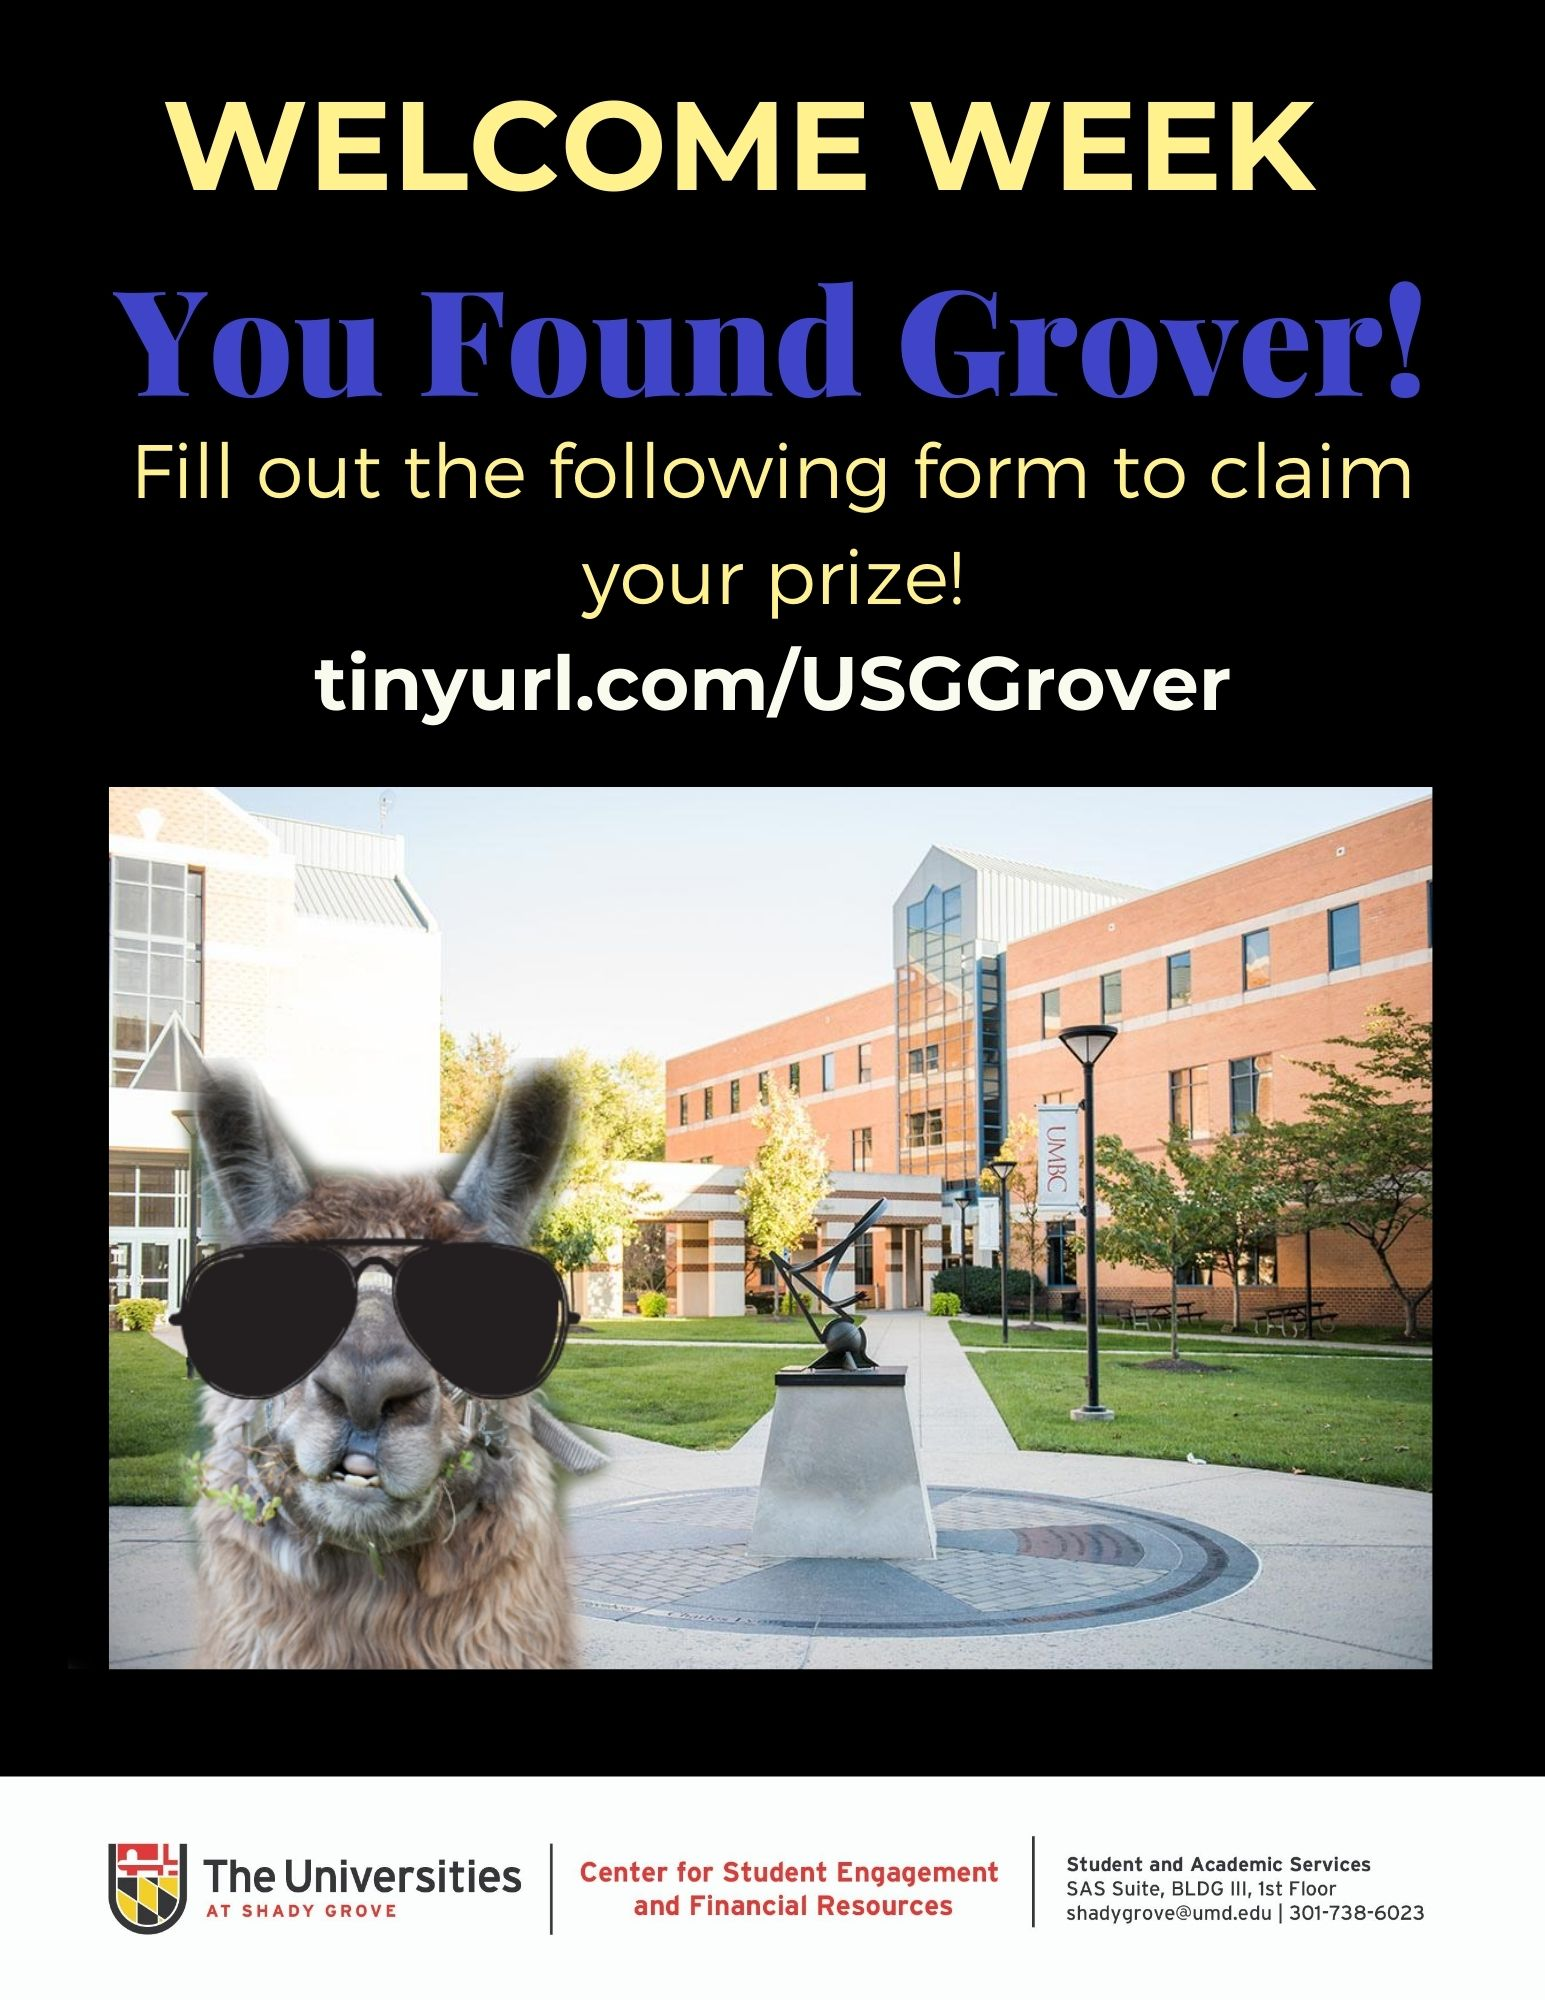 Finding Grover